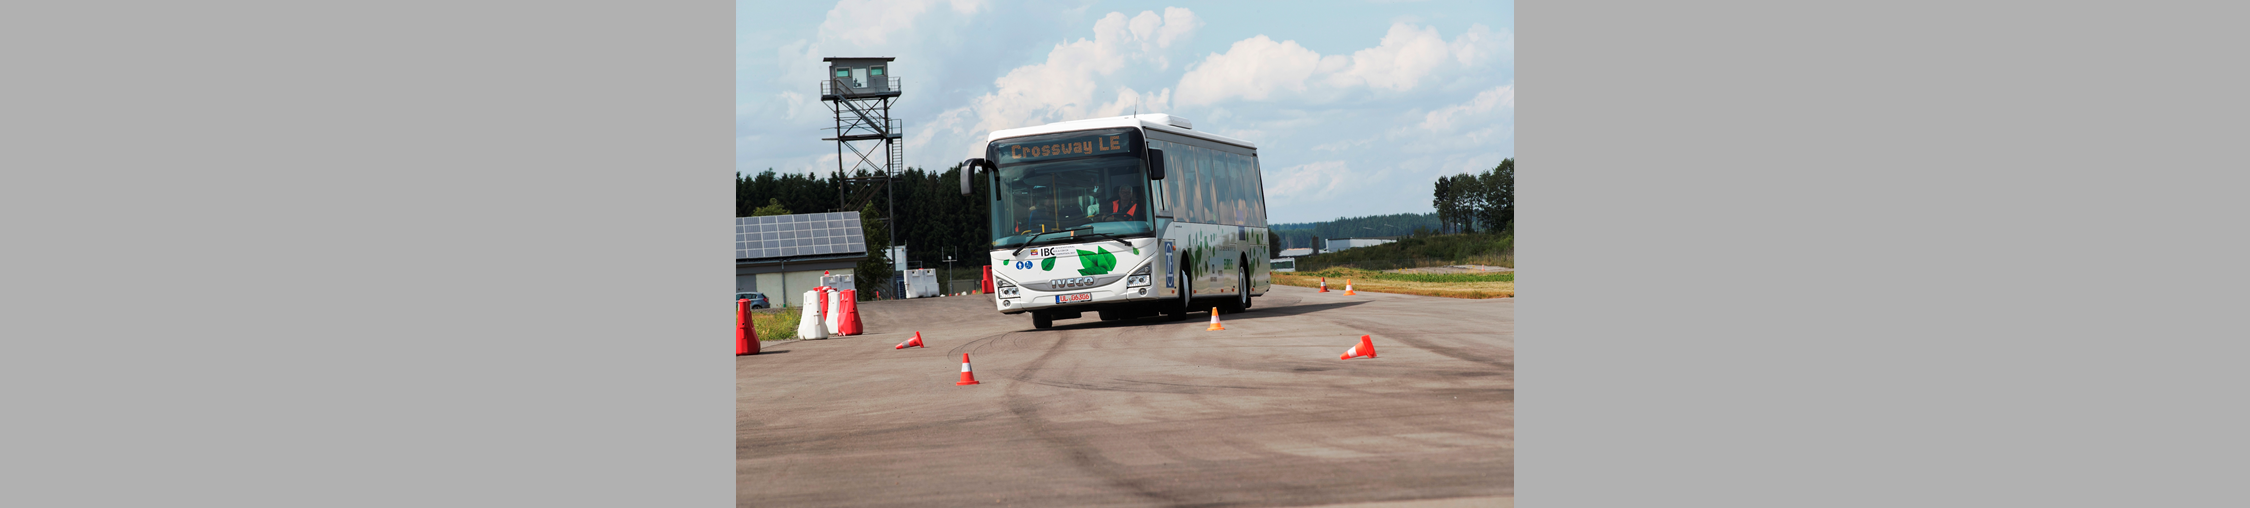 Le Crossway Low Entry d'IVECO BUS remporte le prix IBC, International Bus and Coach Competition